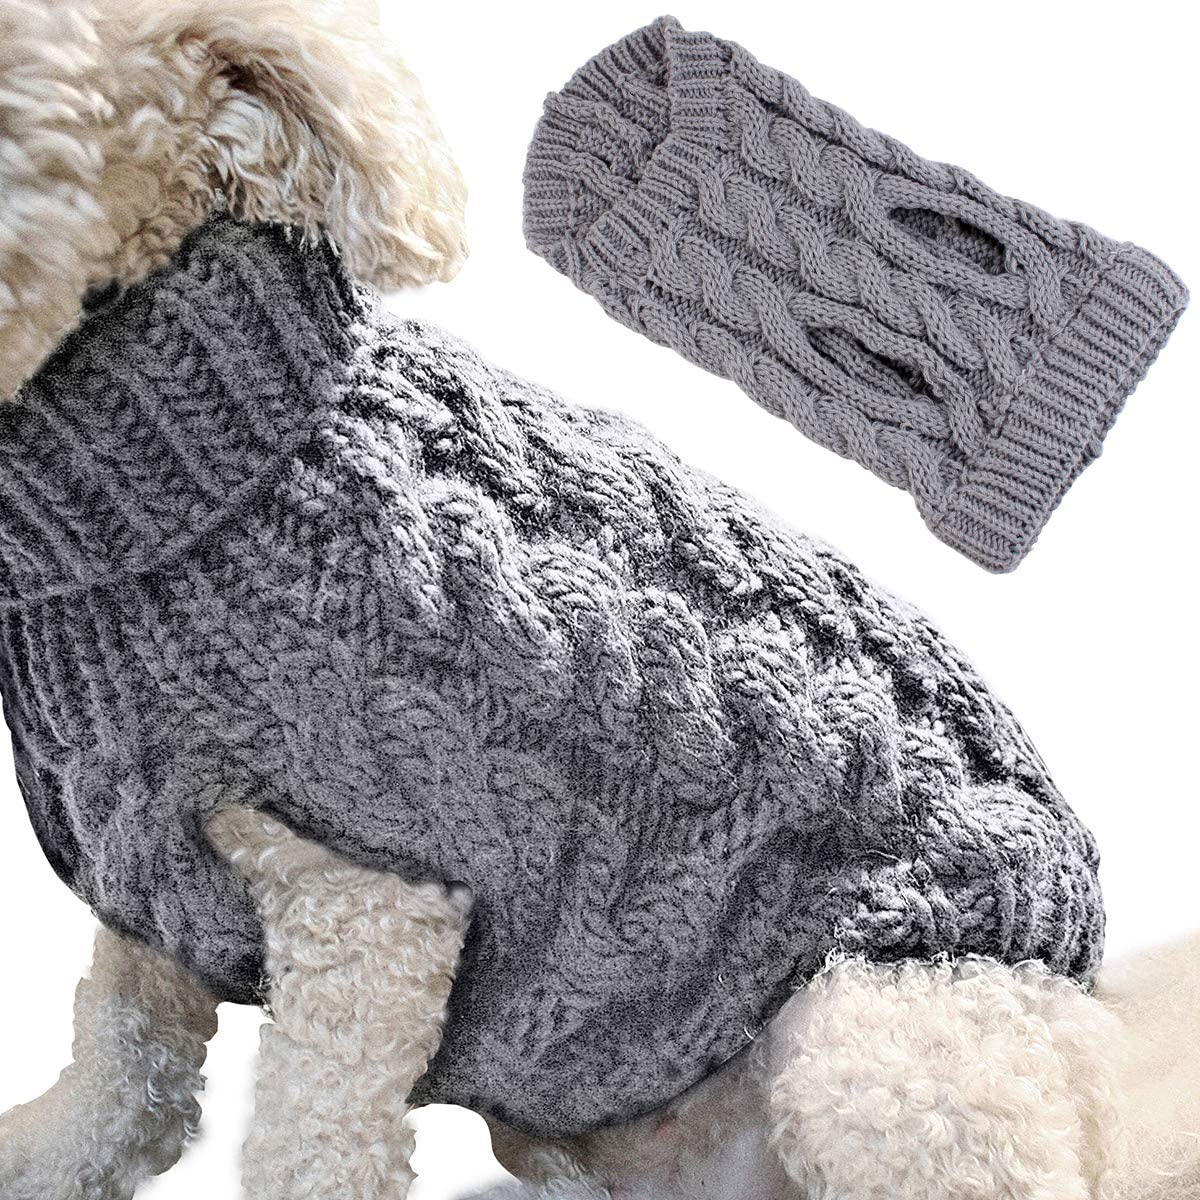 FAMKIT Pet Dog Turtleneck Knitting Sweater Coat Pet Dog Clothes Outwear Fashion Warm Pullover Knitwear Outwear Please Select Bigger Size According to The Size Chart Before Buying